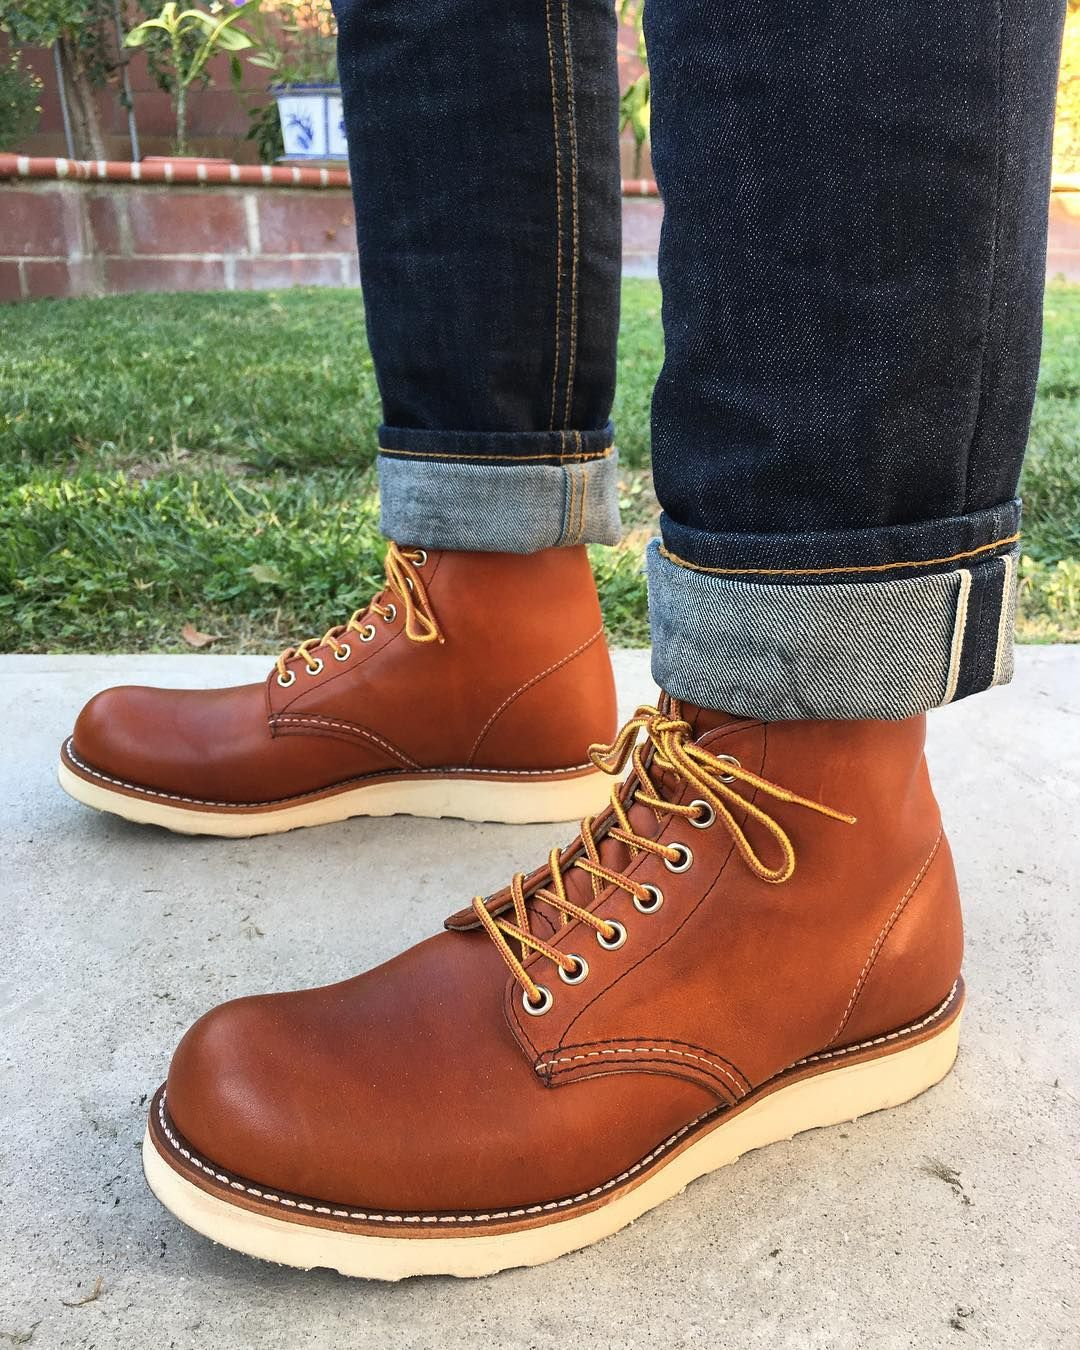 6fd13d1e Discover ideas about Dress With Boots. January 2019. red wing heritage  classic round toe ...